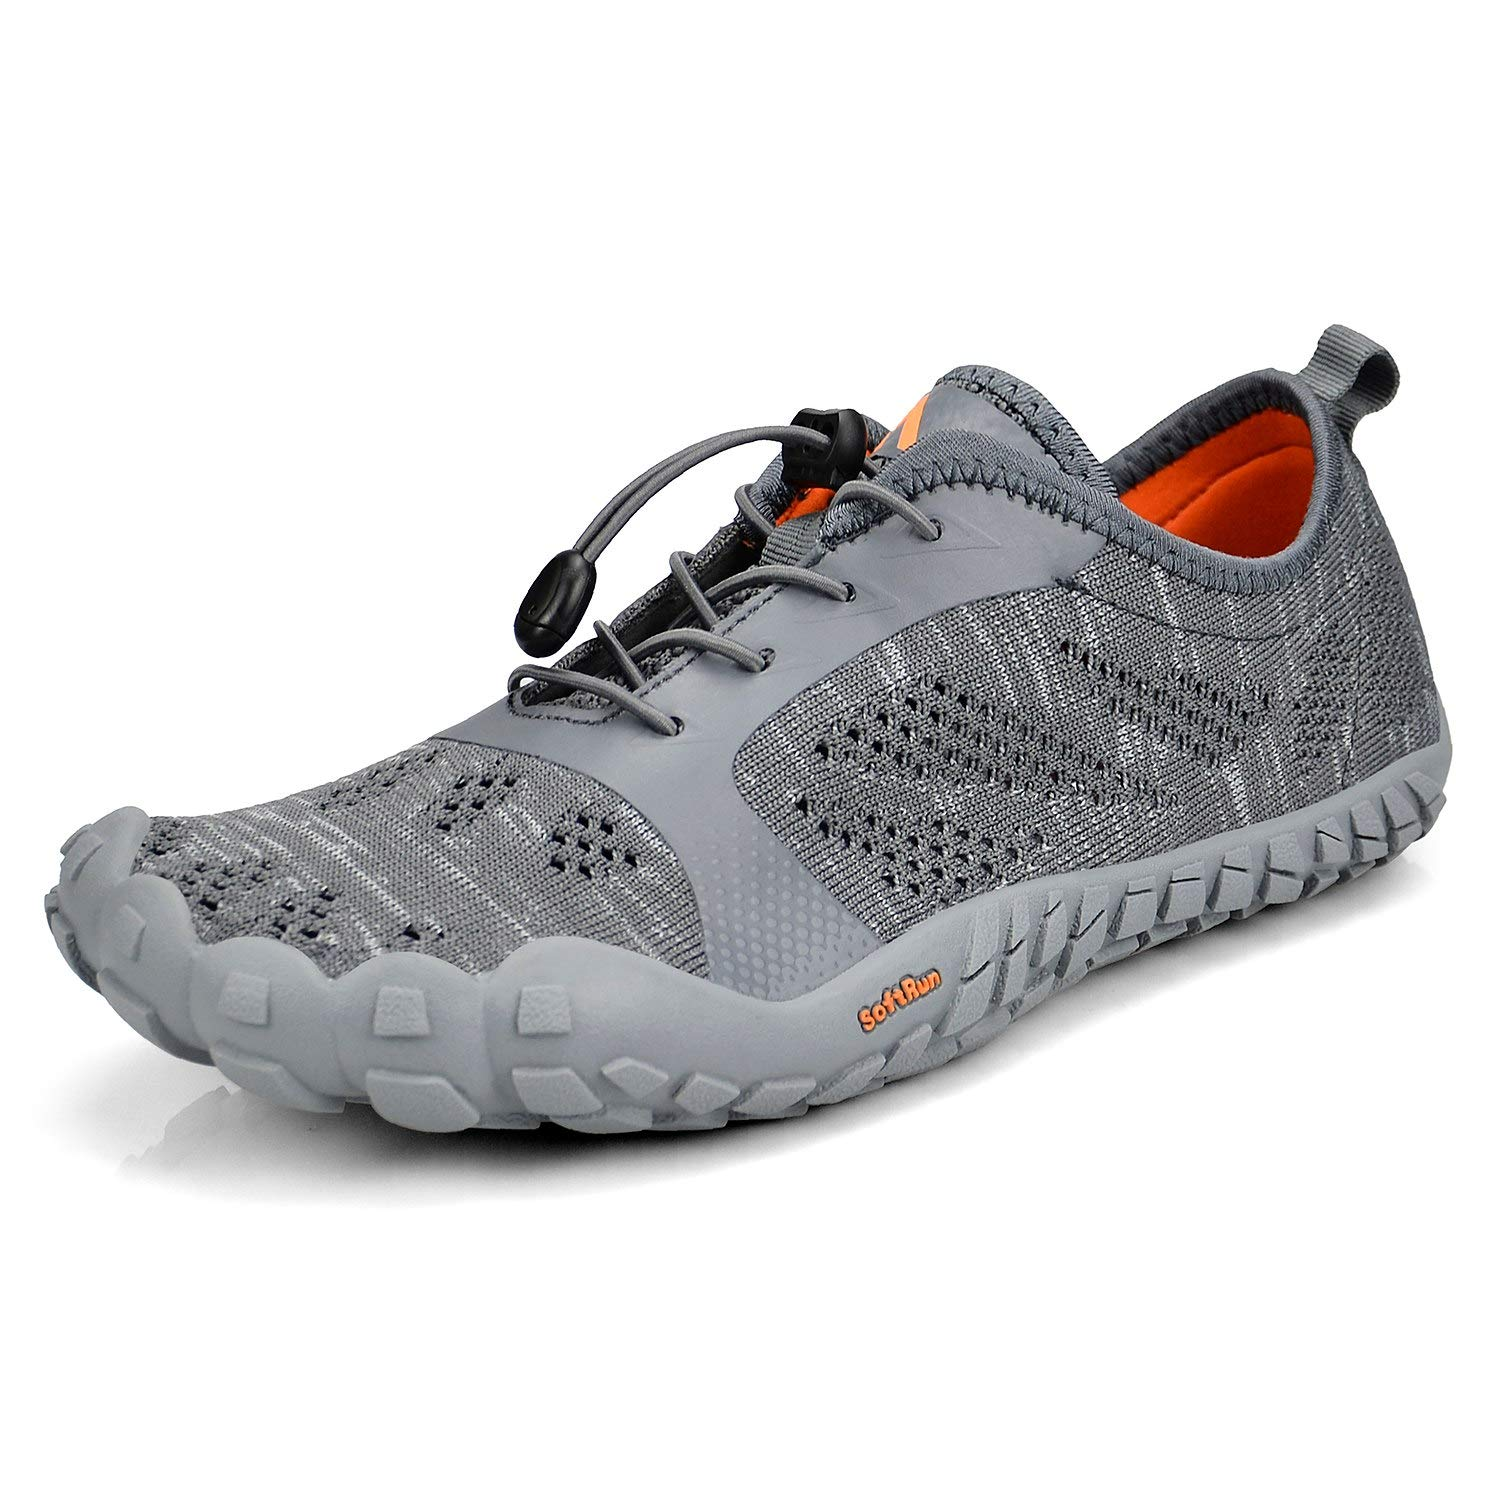 Troadlop Shoes for Men Minimalist Barefoot Shoes for Jogging Workout Trail Running Trekking Hiking Fitness Grey6.5